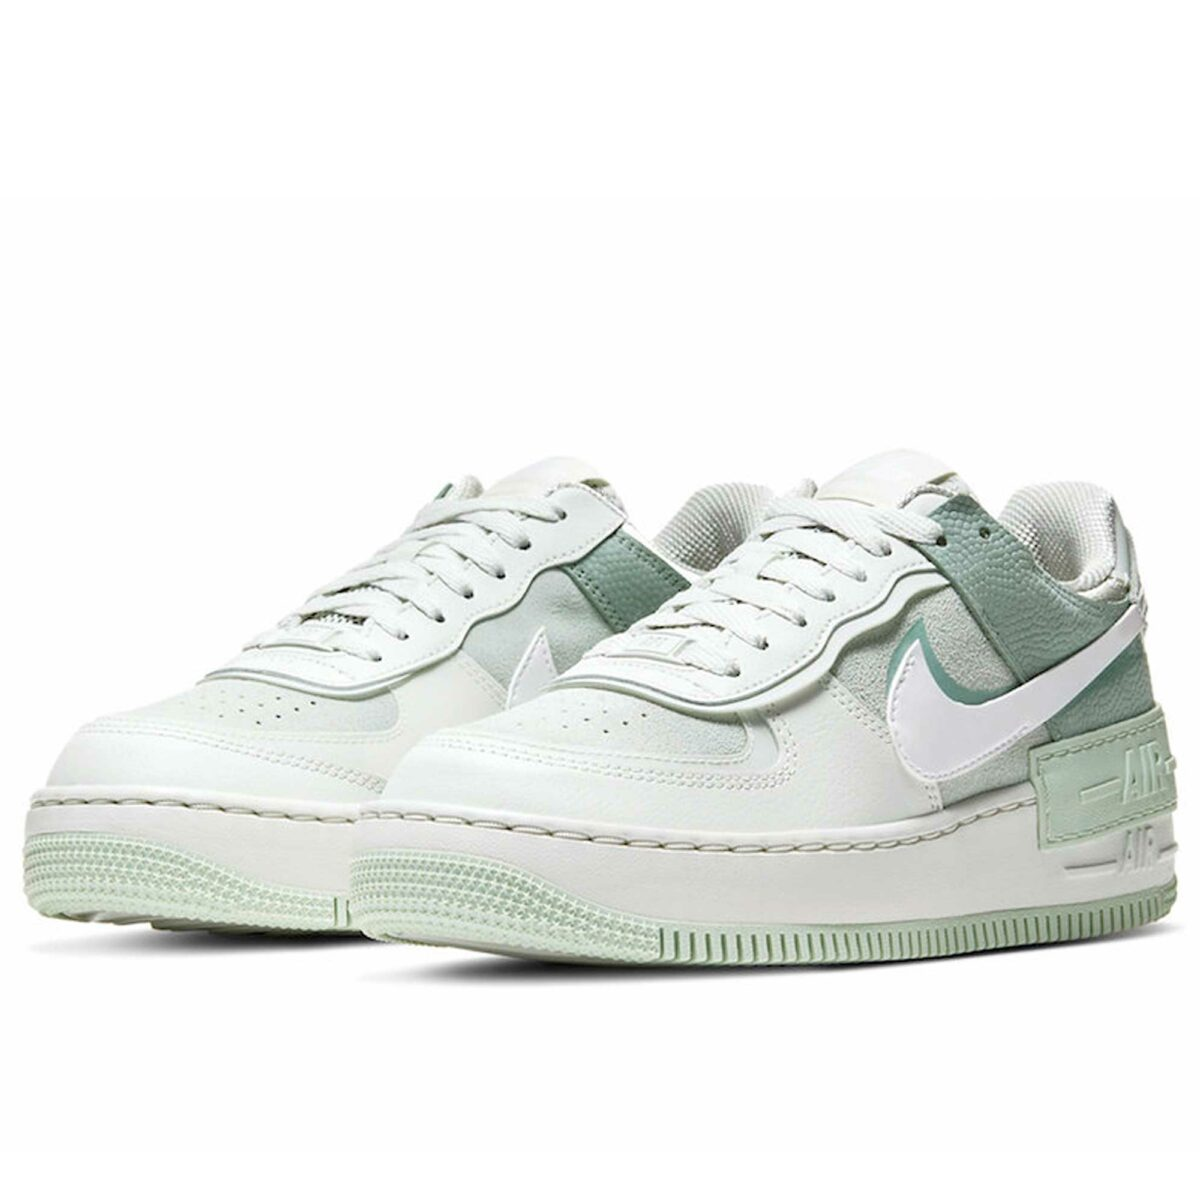 nike air force 1 shadow pistachio frost cw2655 _001 купить